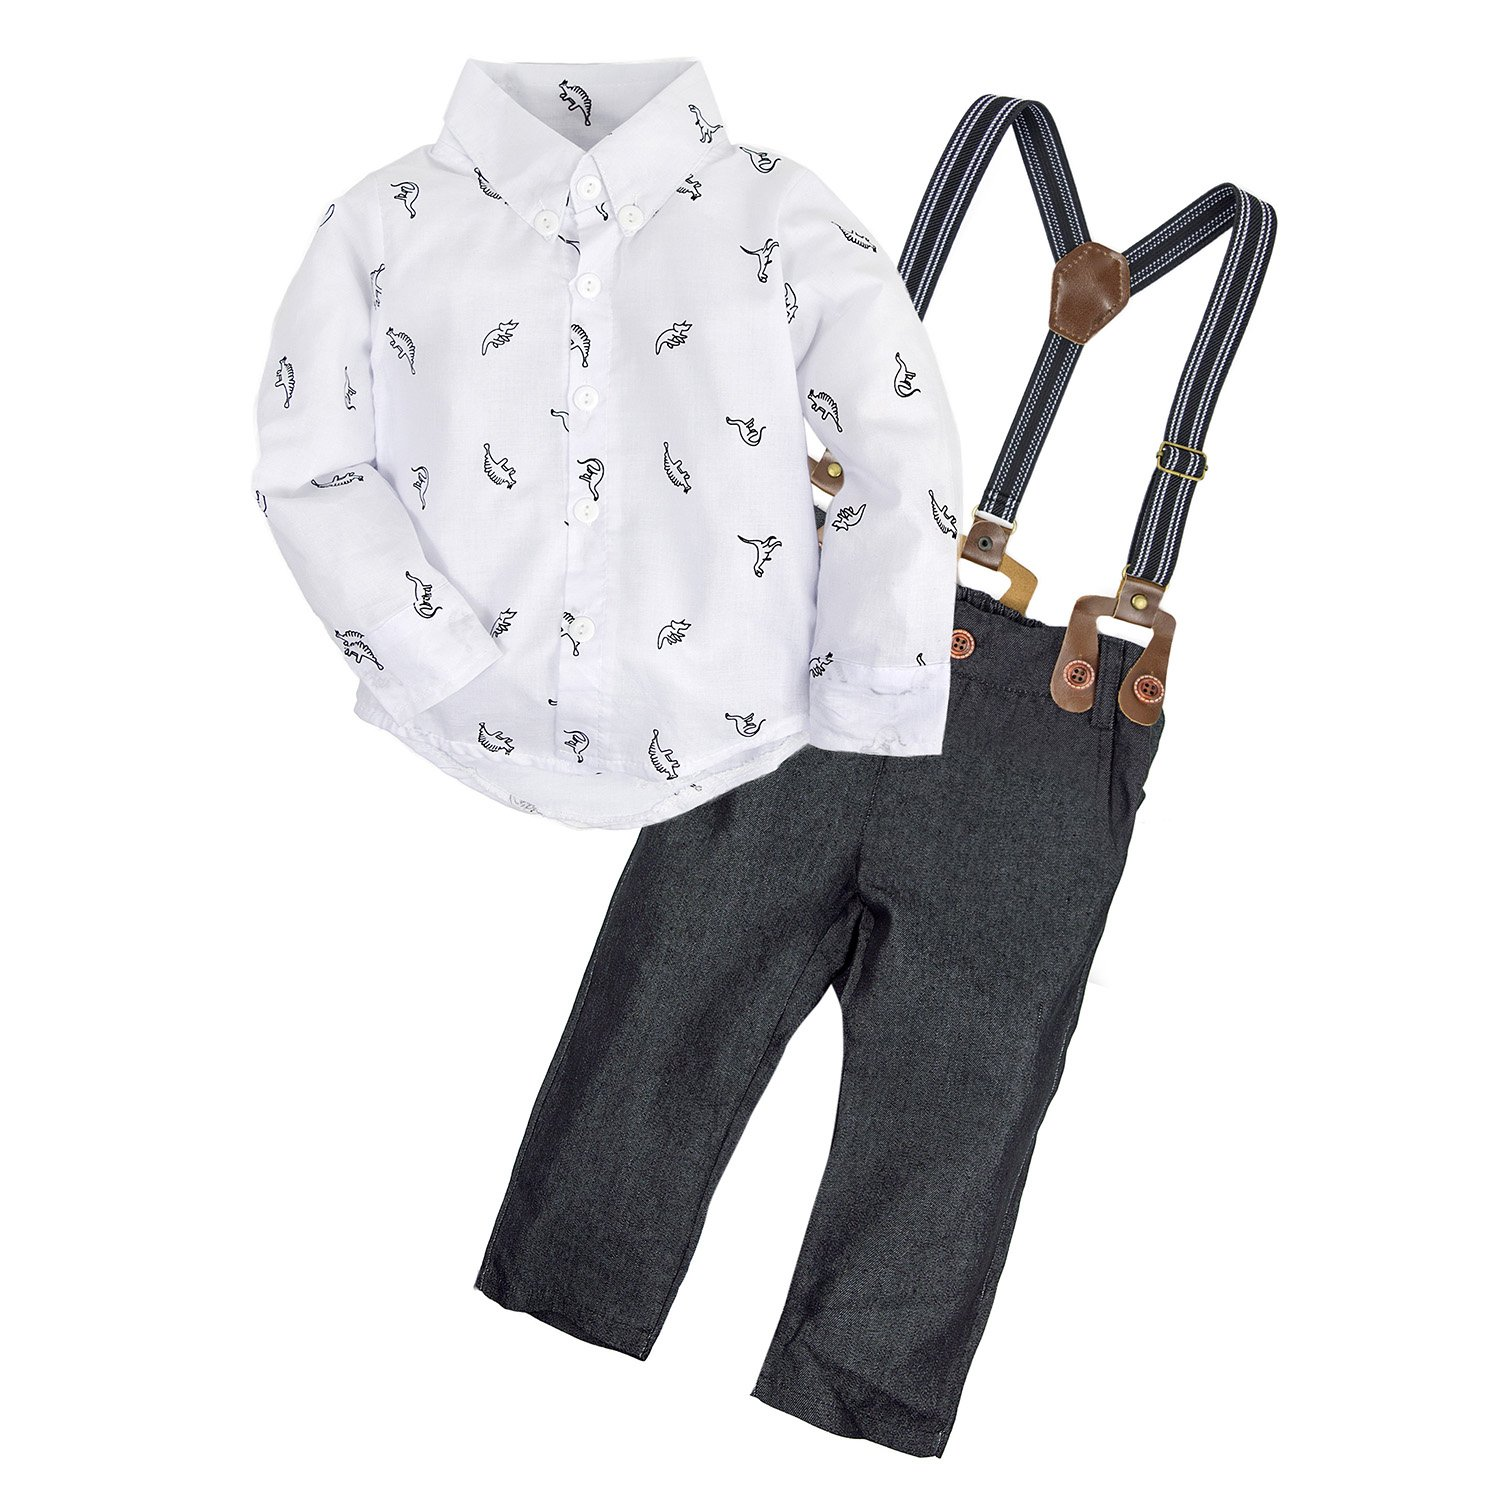 BIG ELEPHANT 2 Pieces Baby Boys Long Sleeve Shirt Overalls Set E34C